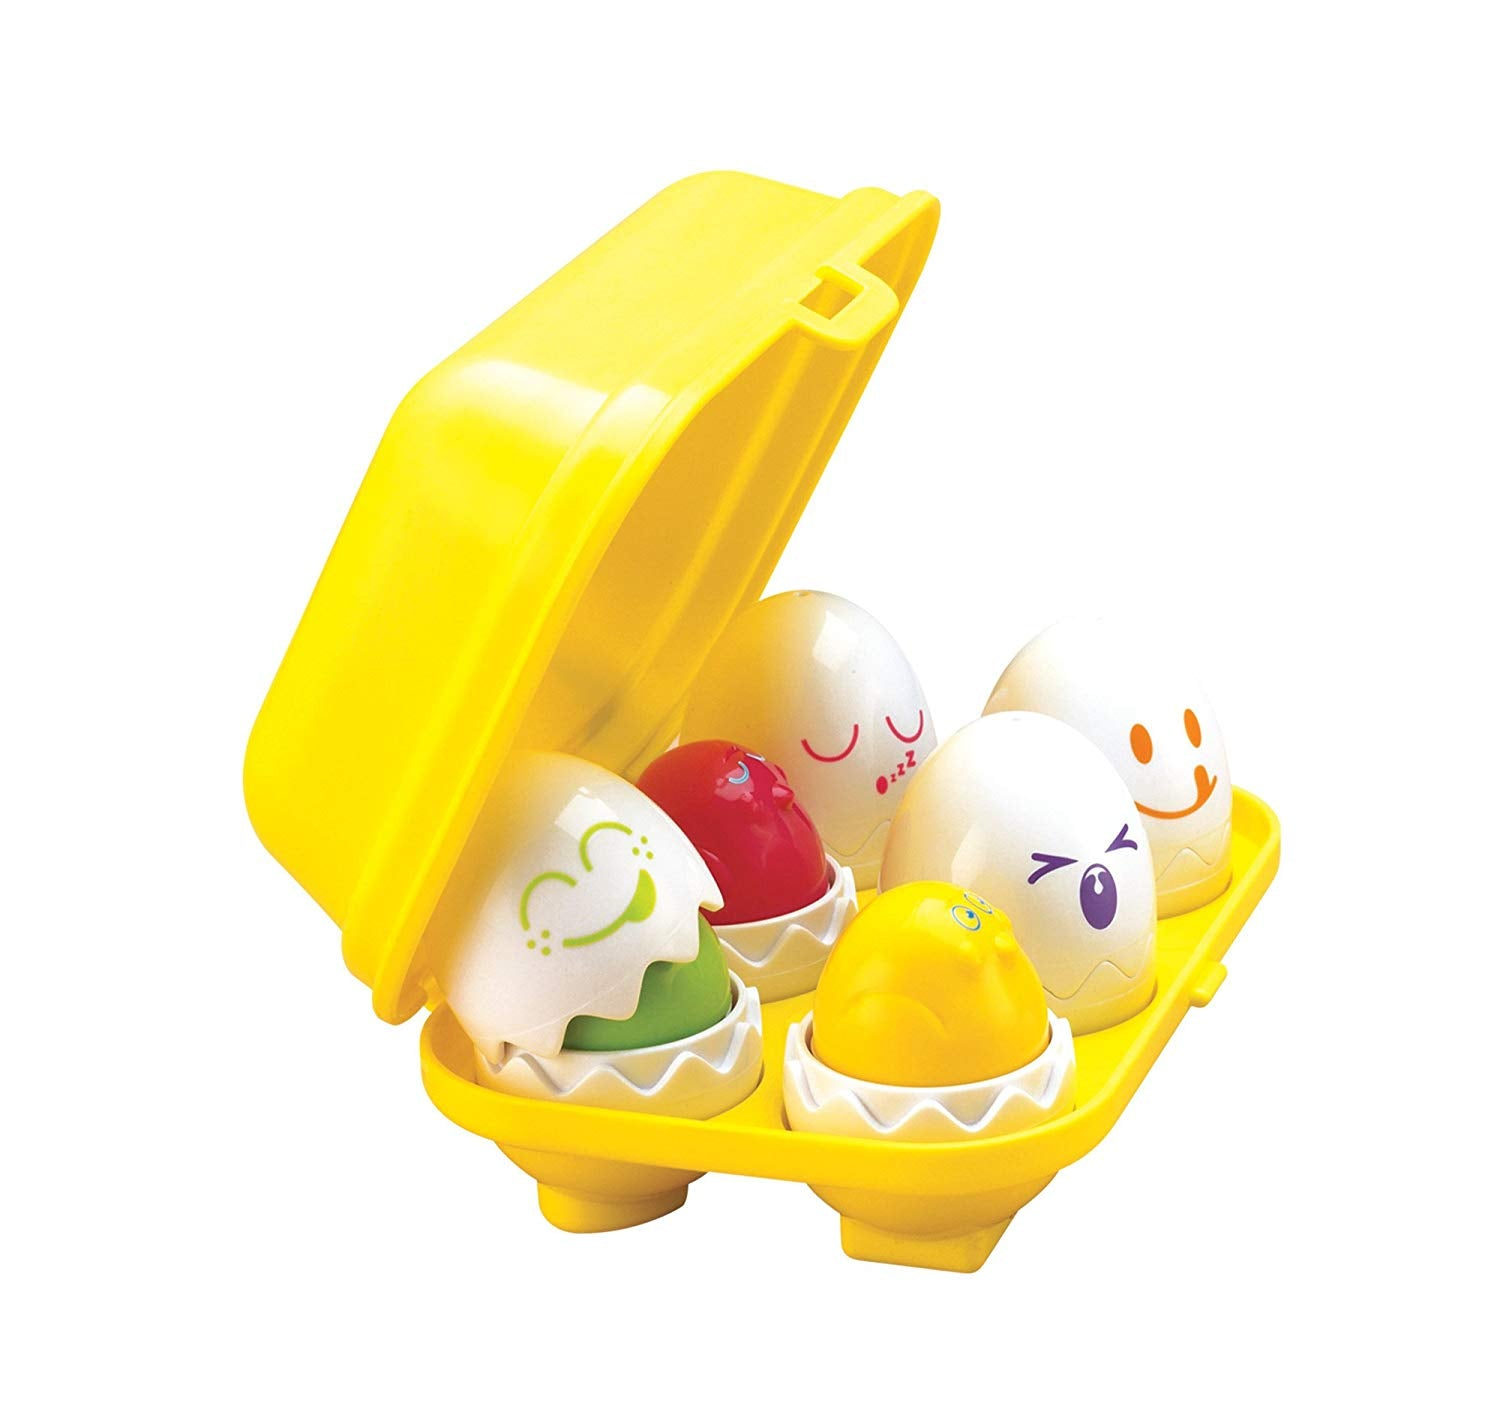 TOMY Toomies Hide and Squeak Eggs, Educational Shape Sorter Baby, For 6 Months & 1, 2 & 3 Year Old Boys & Girls